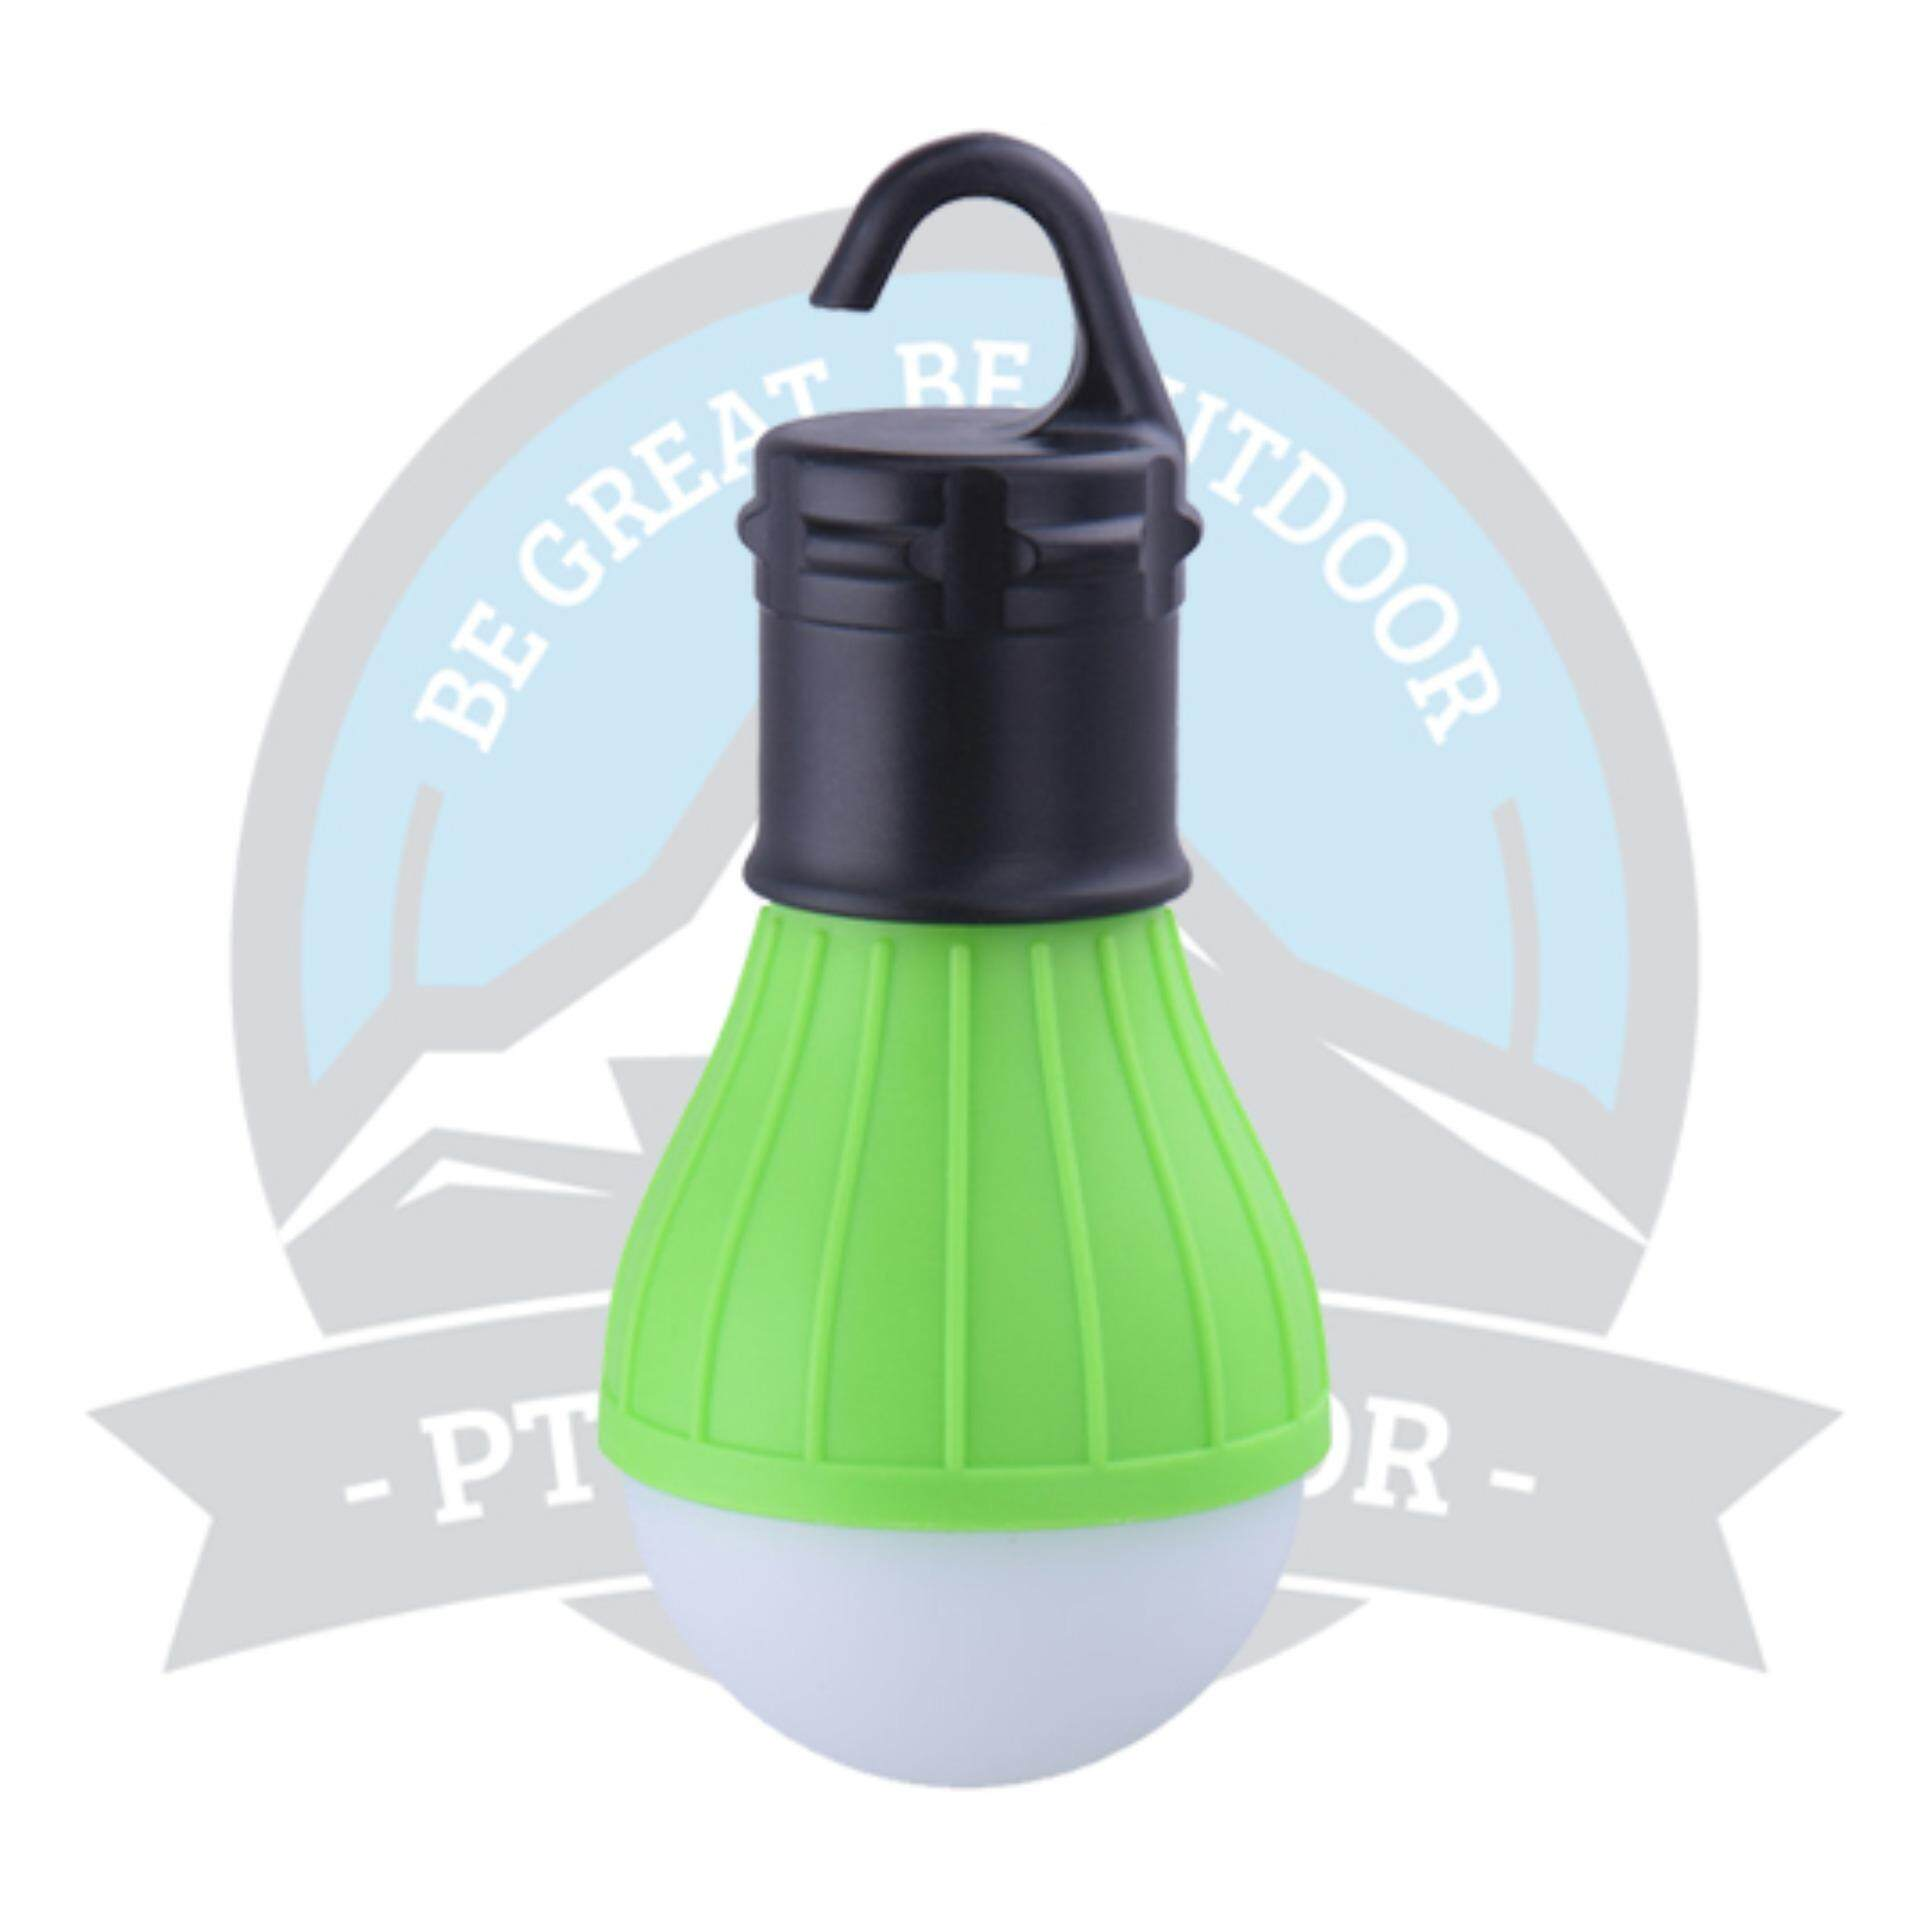 [READY STOCK] LED Tent Light Hanging Lantern Handy Warm Lamp For Hiking, Camping Or Outdoor Activities - GREEN